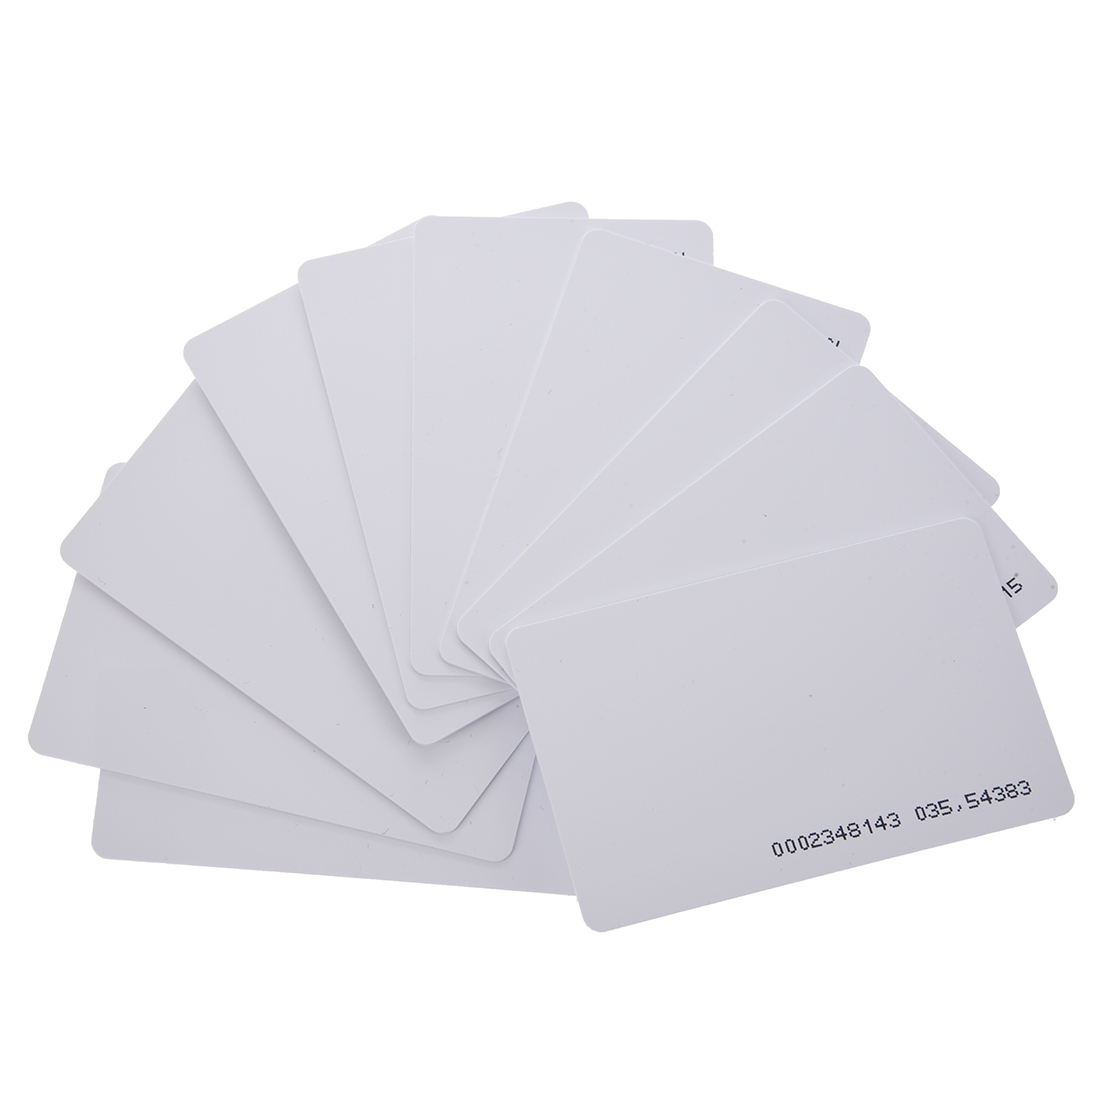 125khz em4100 door entry access blank white proximity rfid clamshell thick card thickness 1 9mm pack of 10 MOOL 125Khz Door Entry Access Proximity RFID Card Wht 10 Pcs